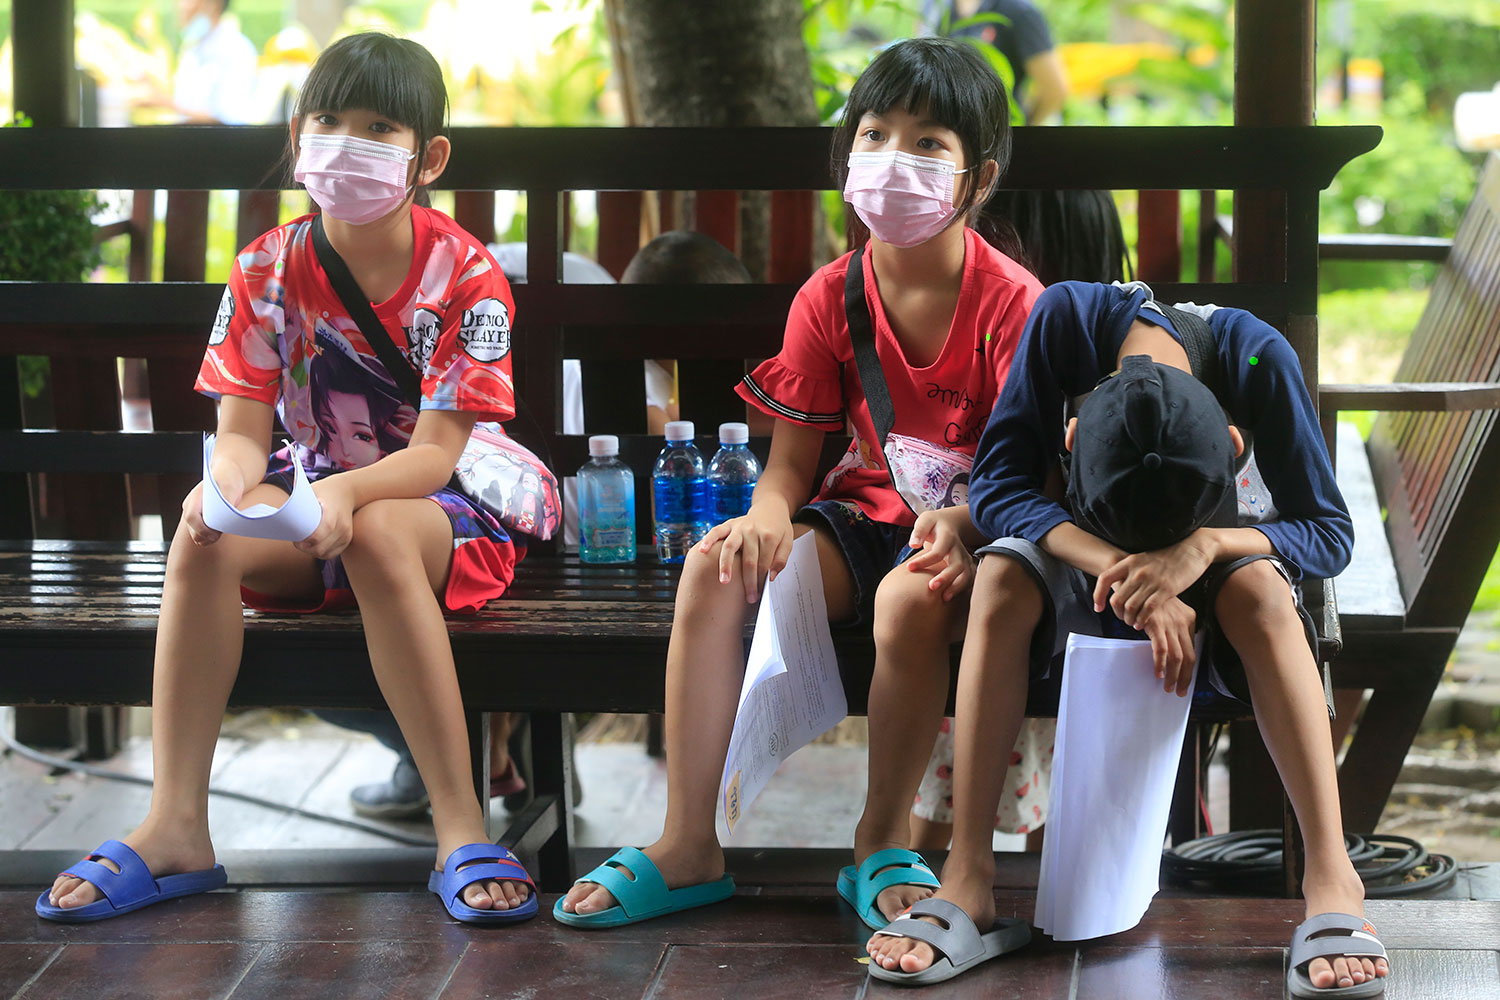 Department of Health advises vaccination against Covid-19 for young people aged 12-18 years who suffer from chronic illnesses, amid concern over rising infections in this age group. (Bangkok Post photo)